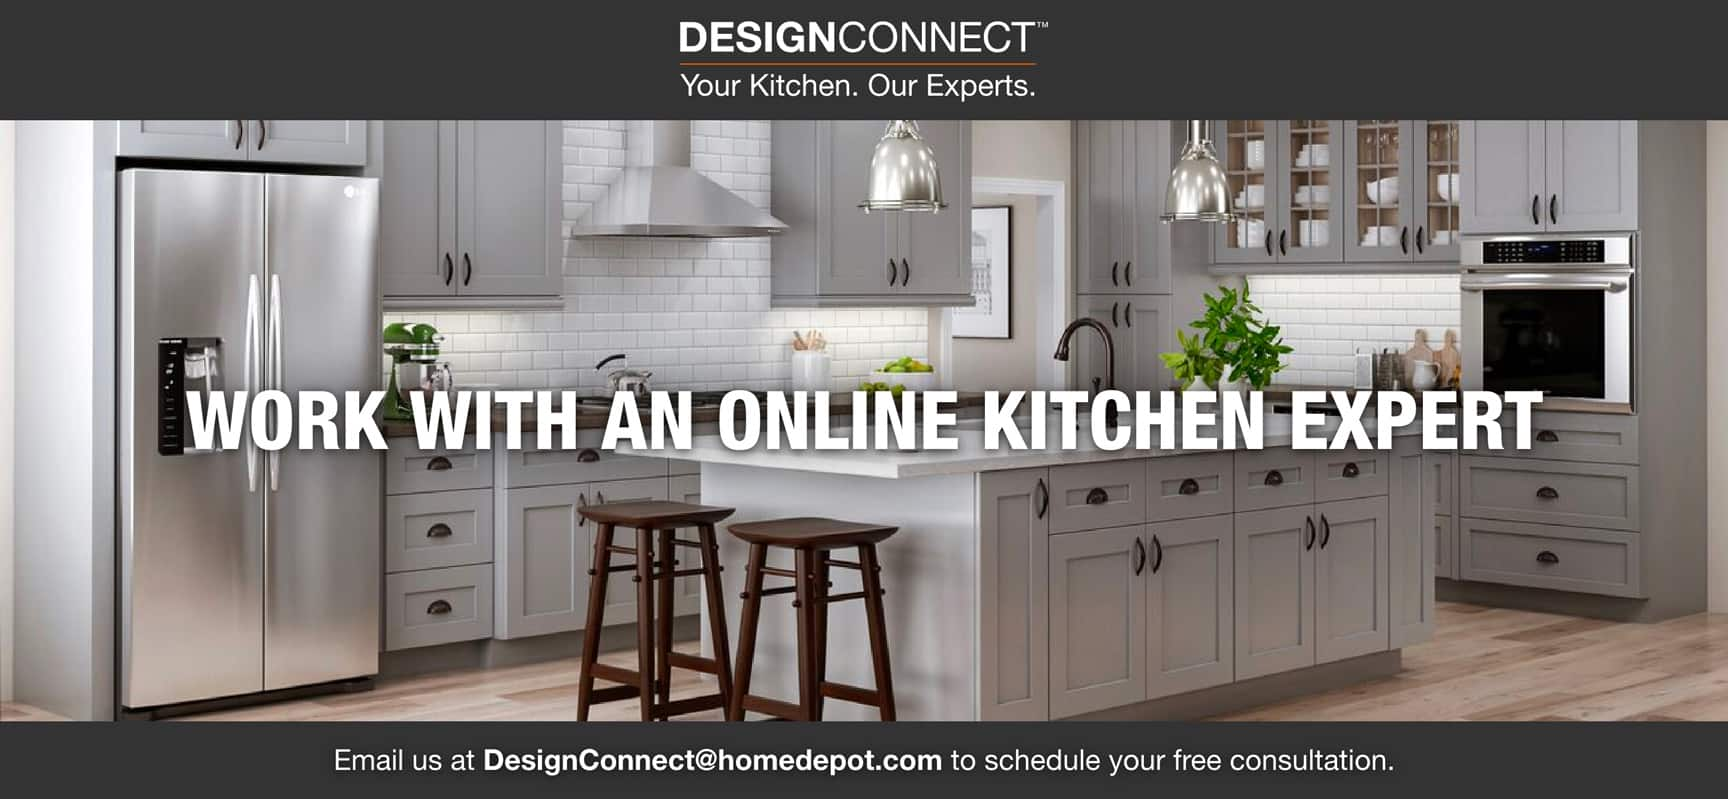 The Home Depot   DesignConnect